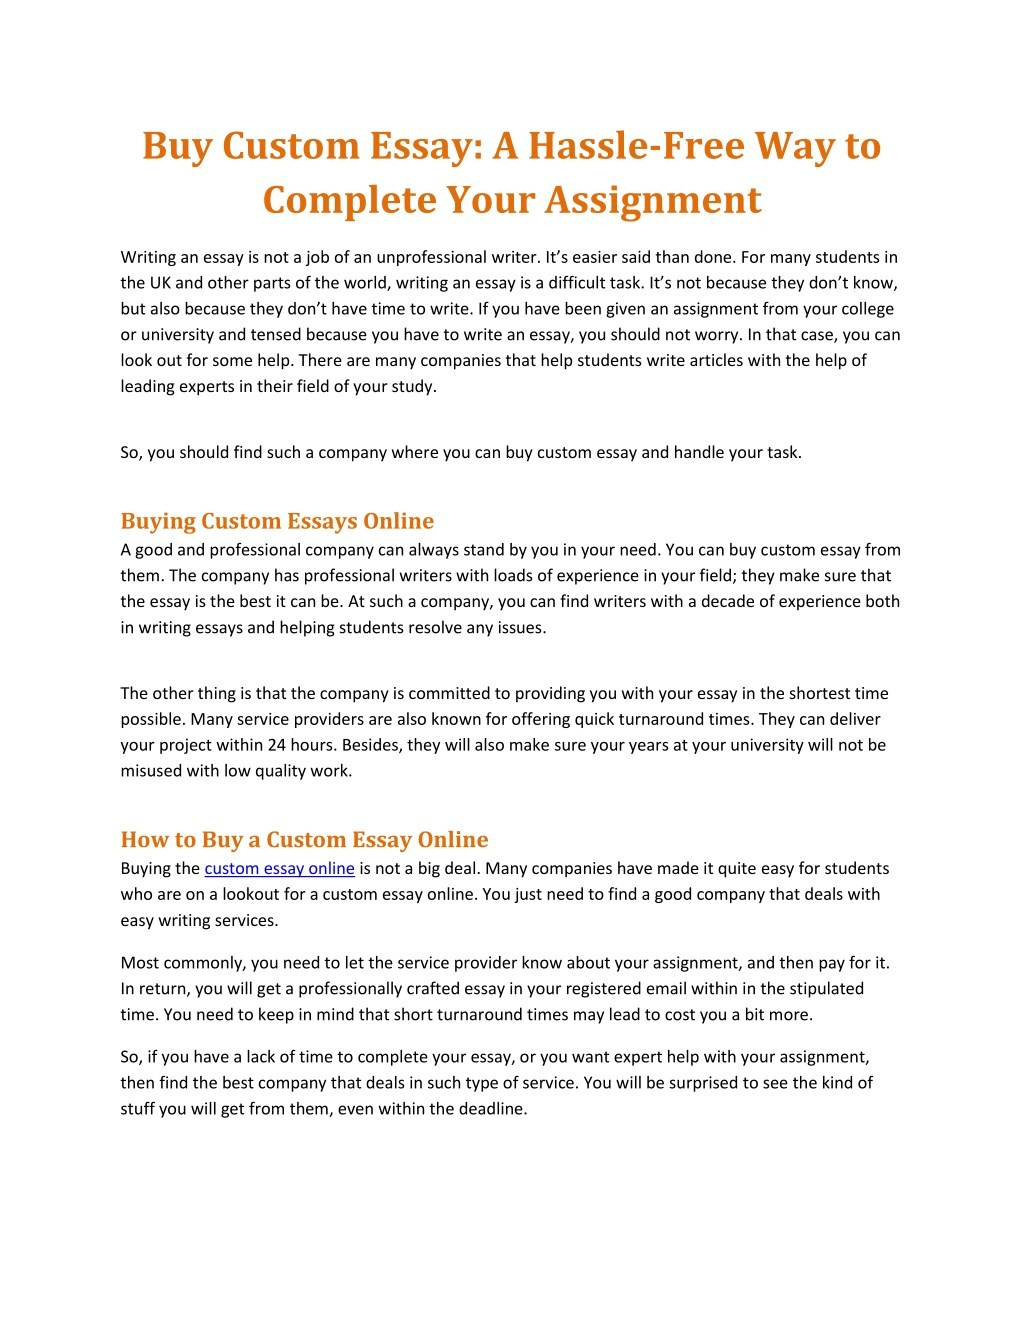 002 Essay Example Buy Custom Hassle Free Way To Complete L Order Incredible Online Large